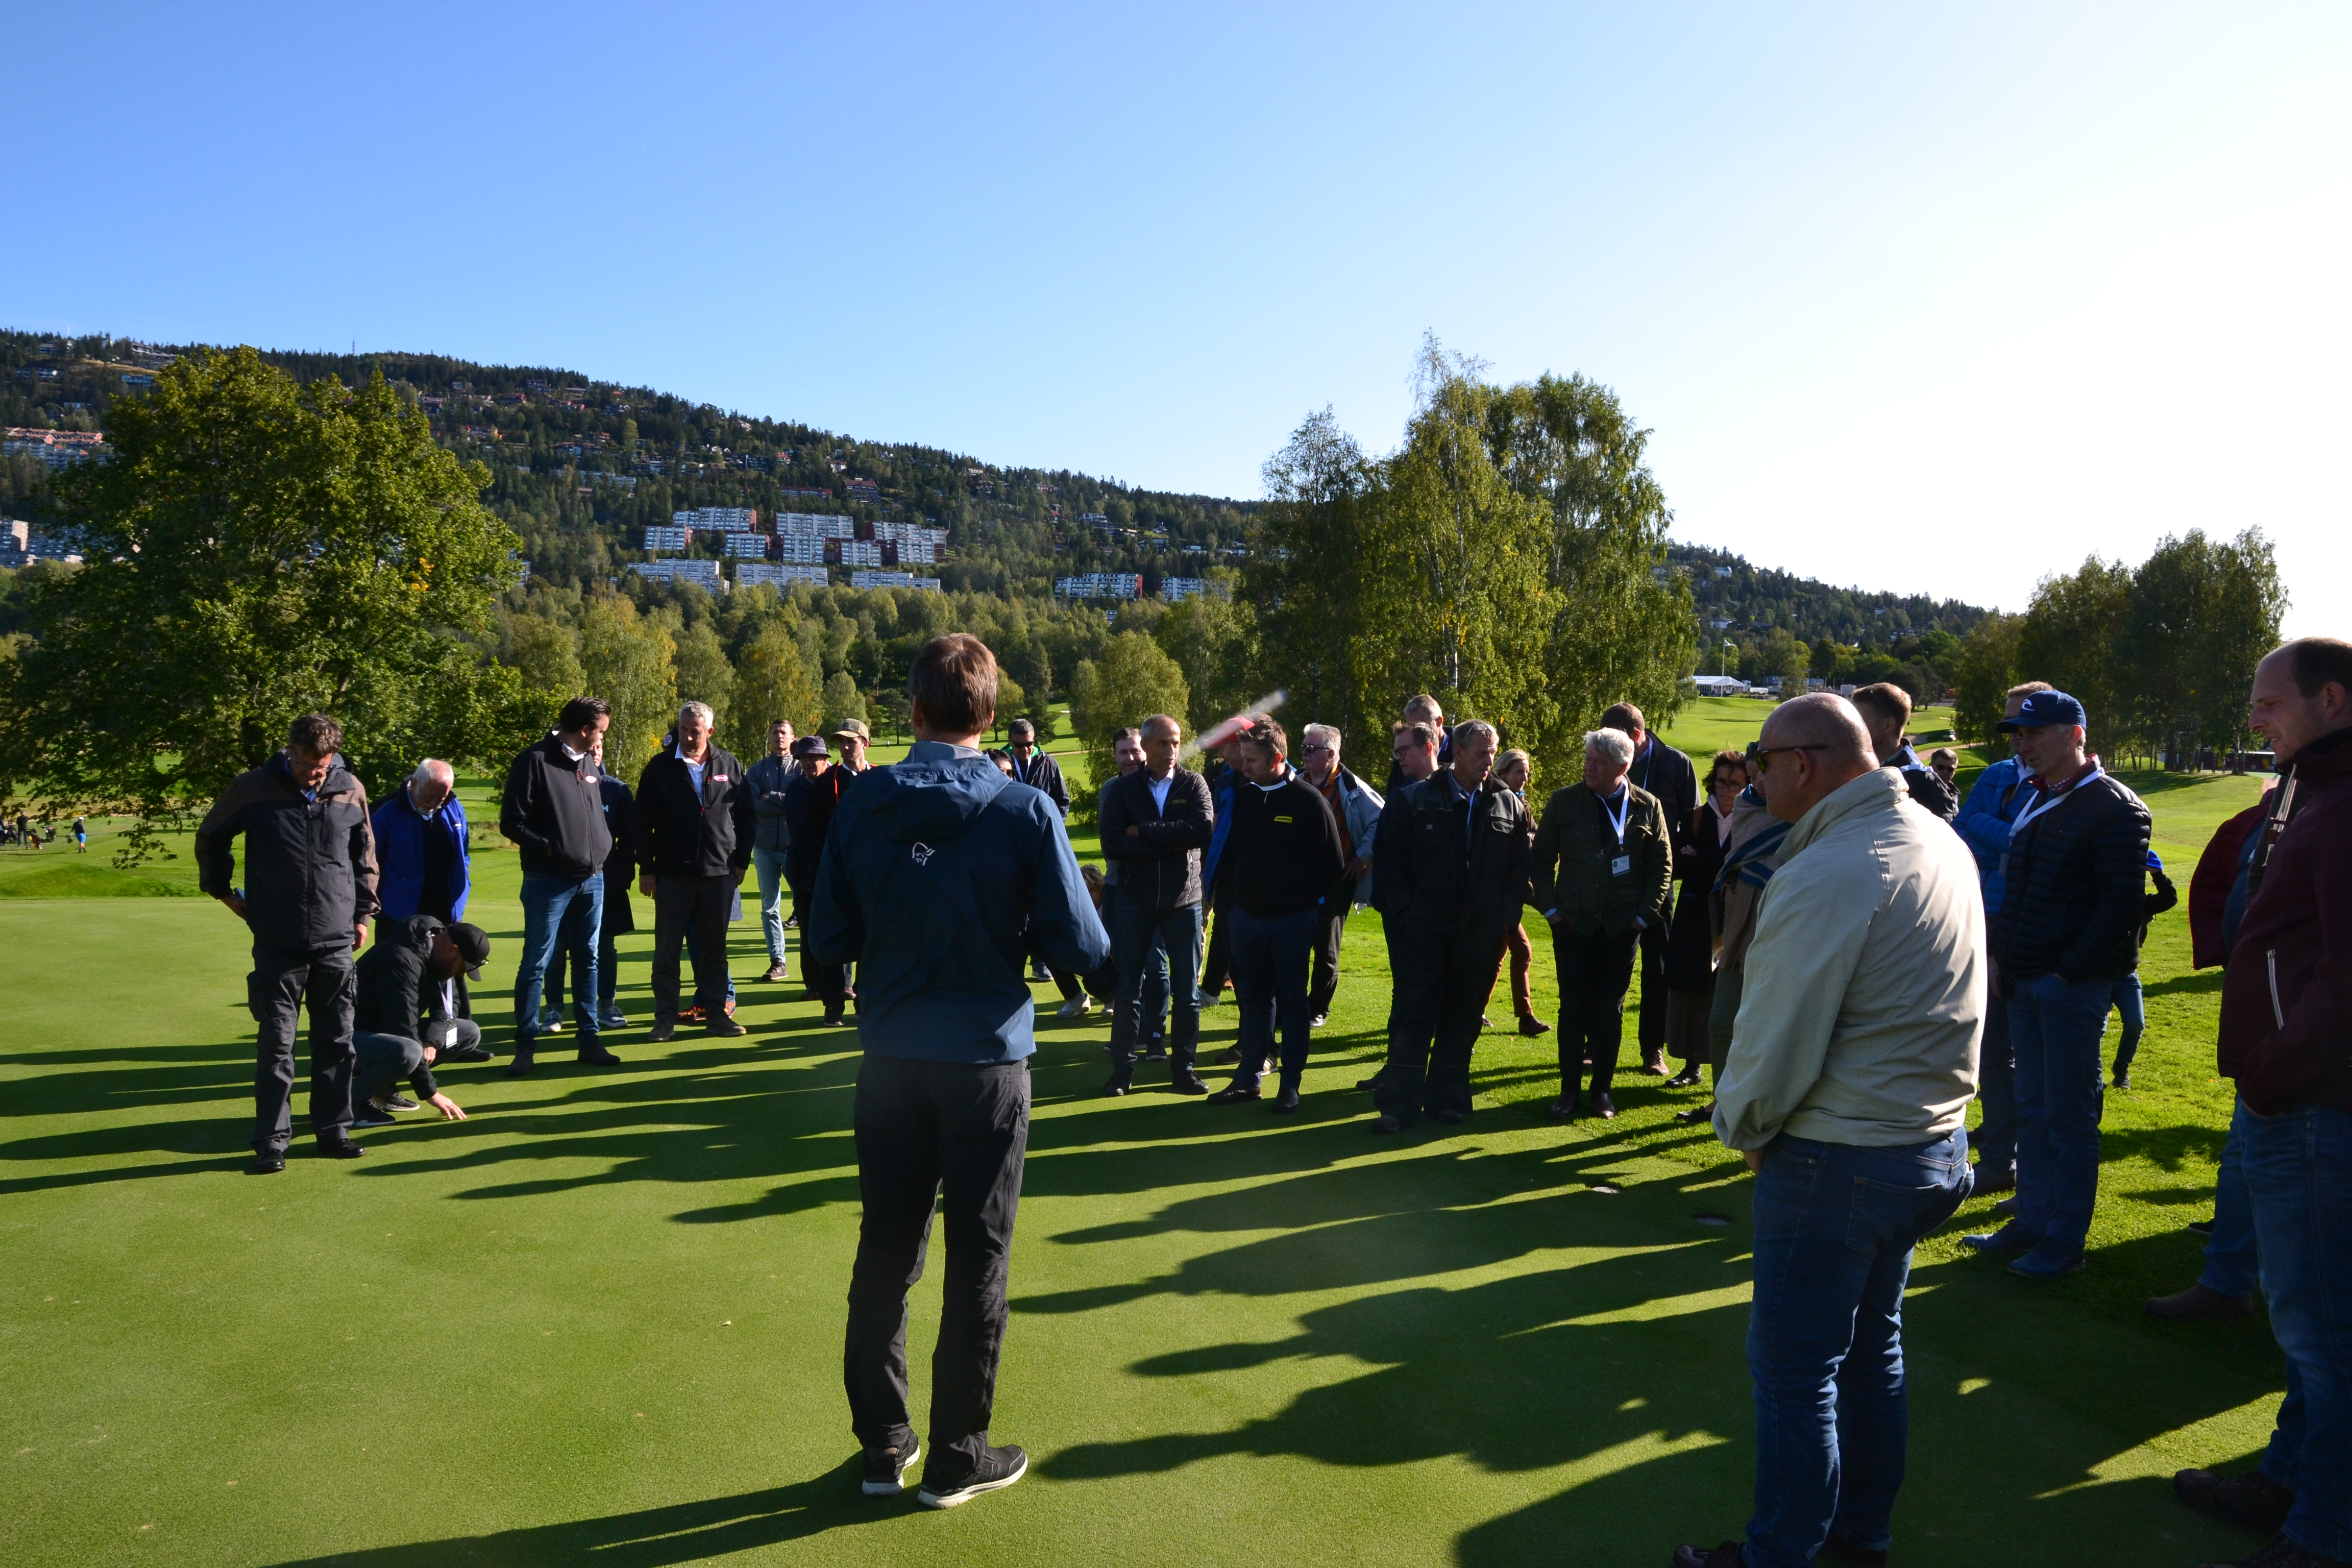 ETP Farm Tours in Oslo, Norway from September 12-13 2019